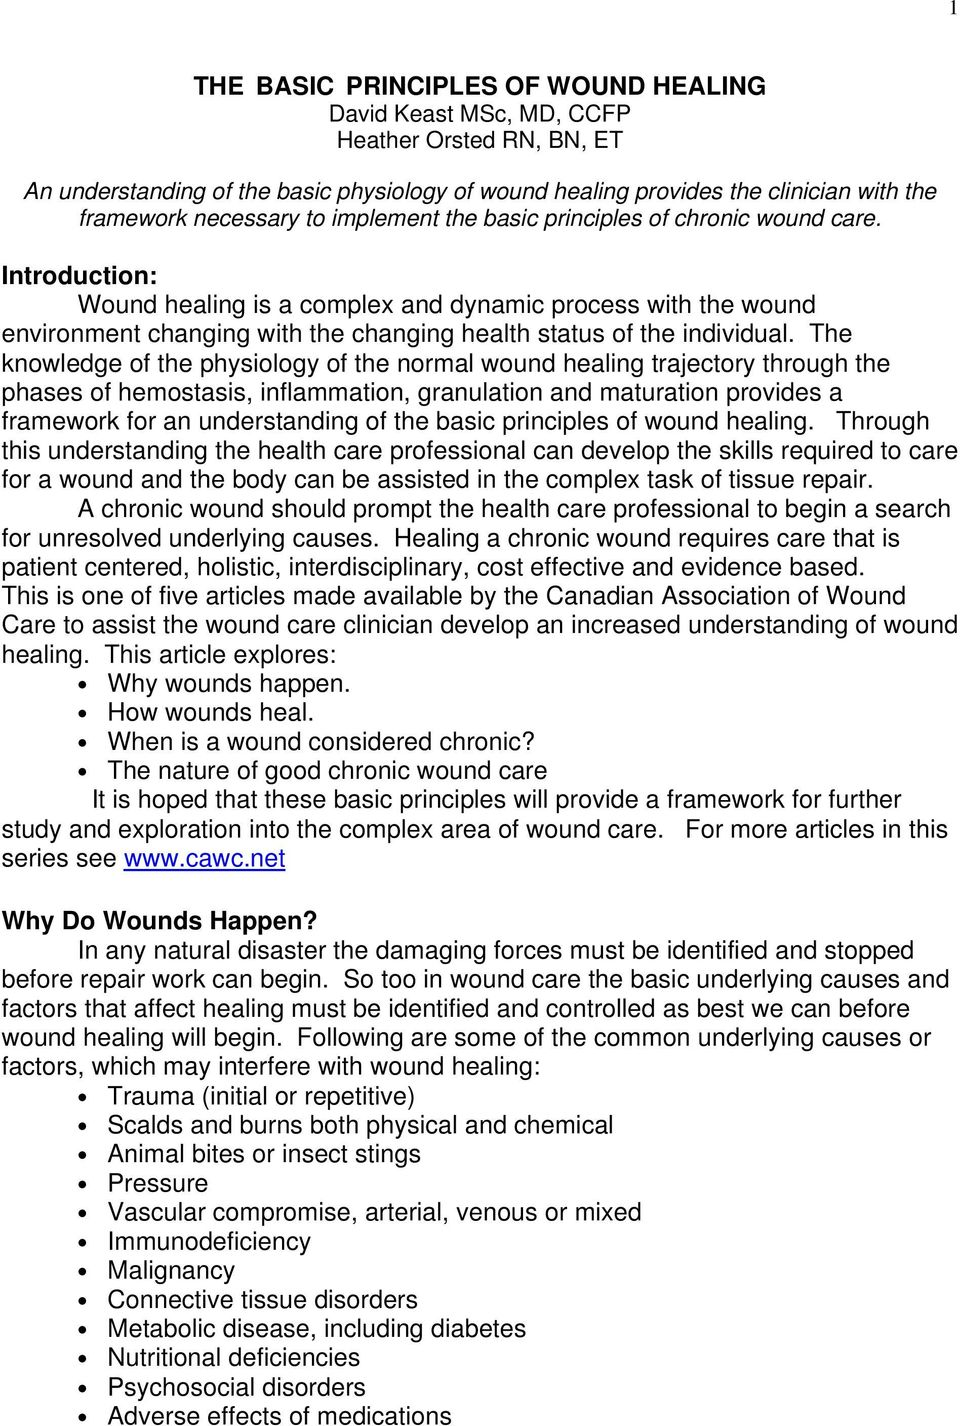 THE BASIC PRINCIPLES OF WOUND HEALING David Keast MSc, MD